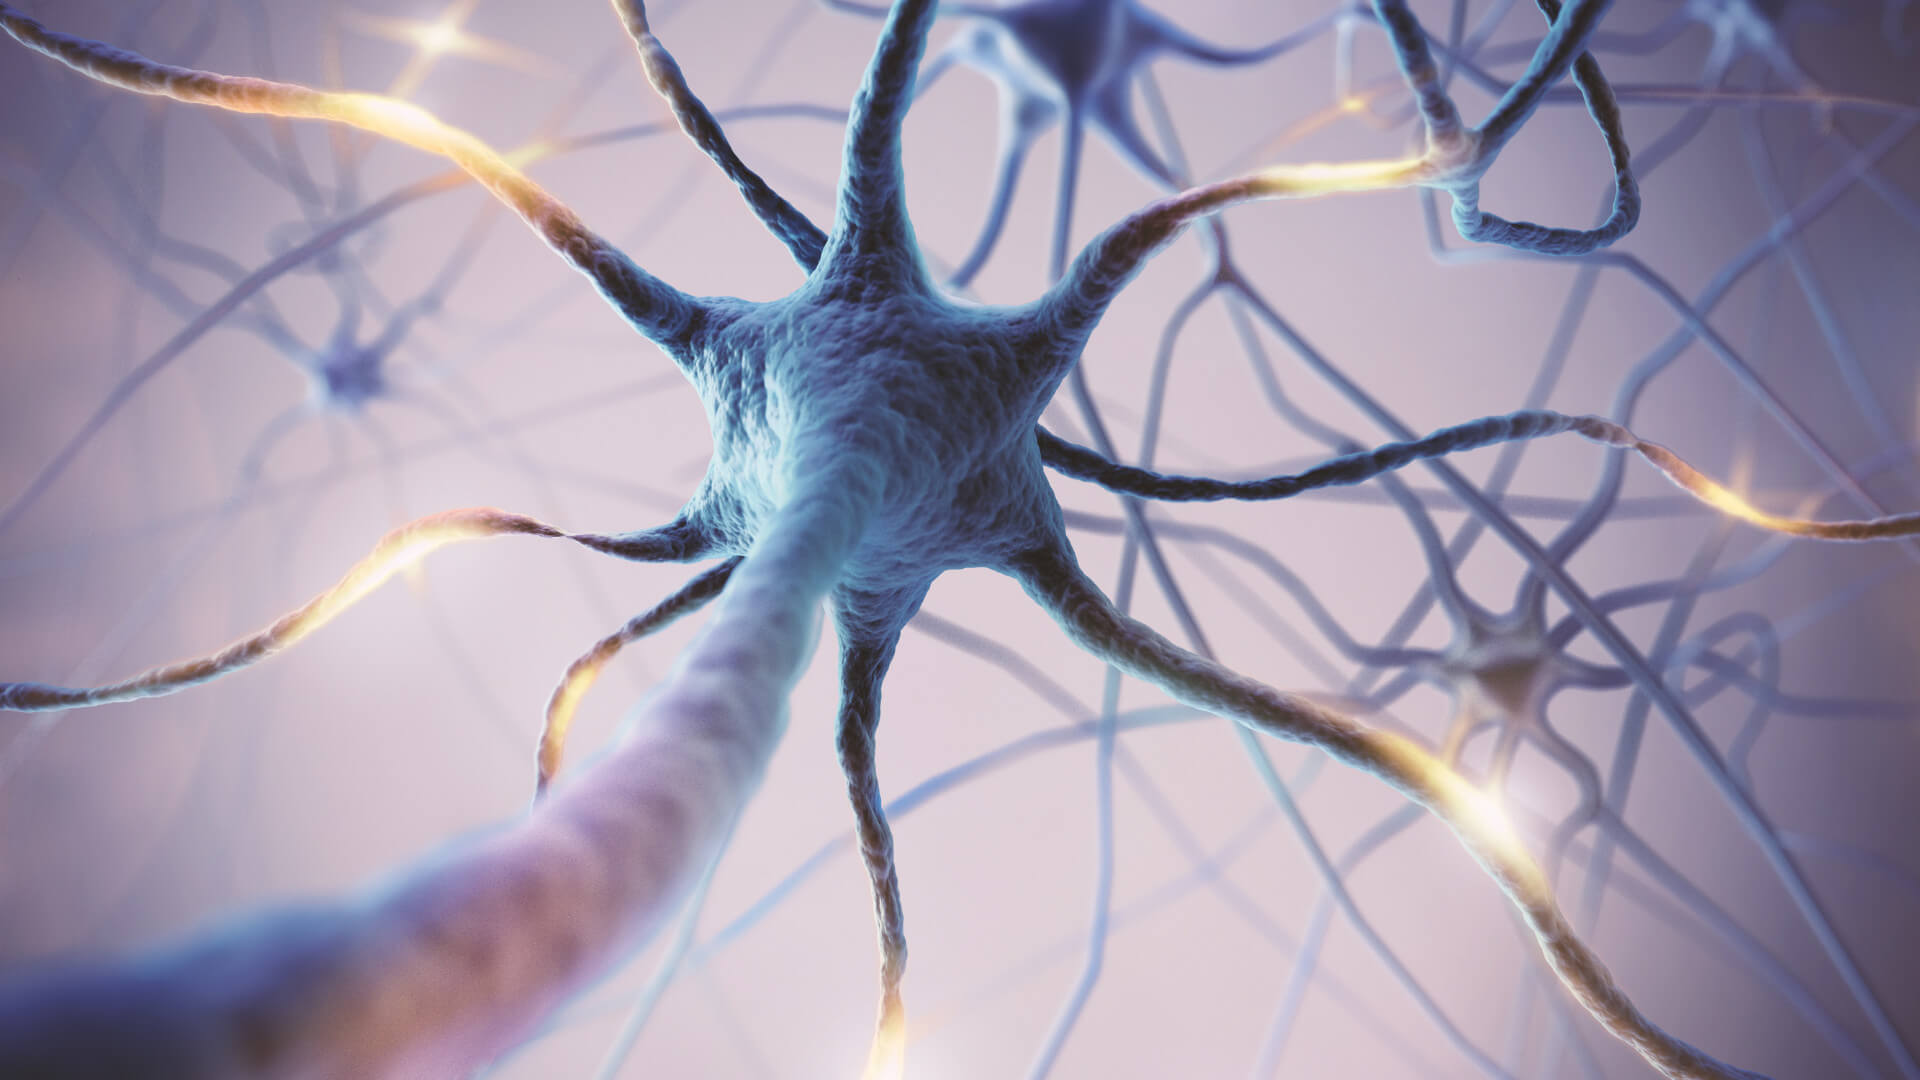 MSG can potentially disrupt neurons and might have adverse effects on behavior.